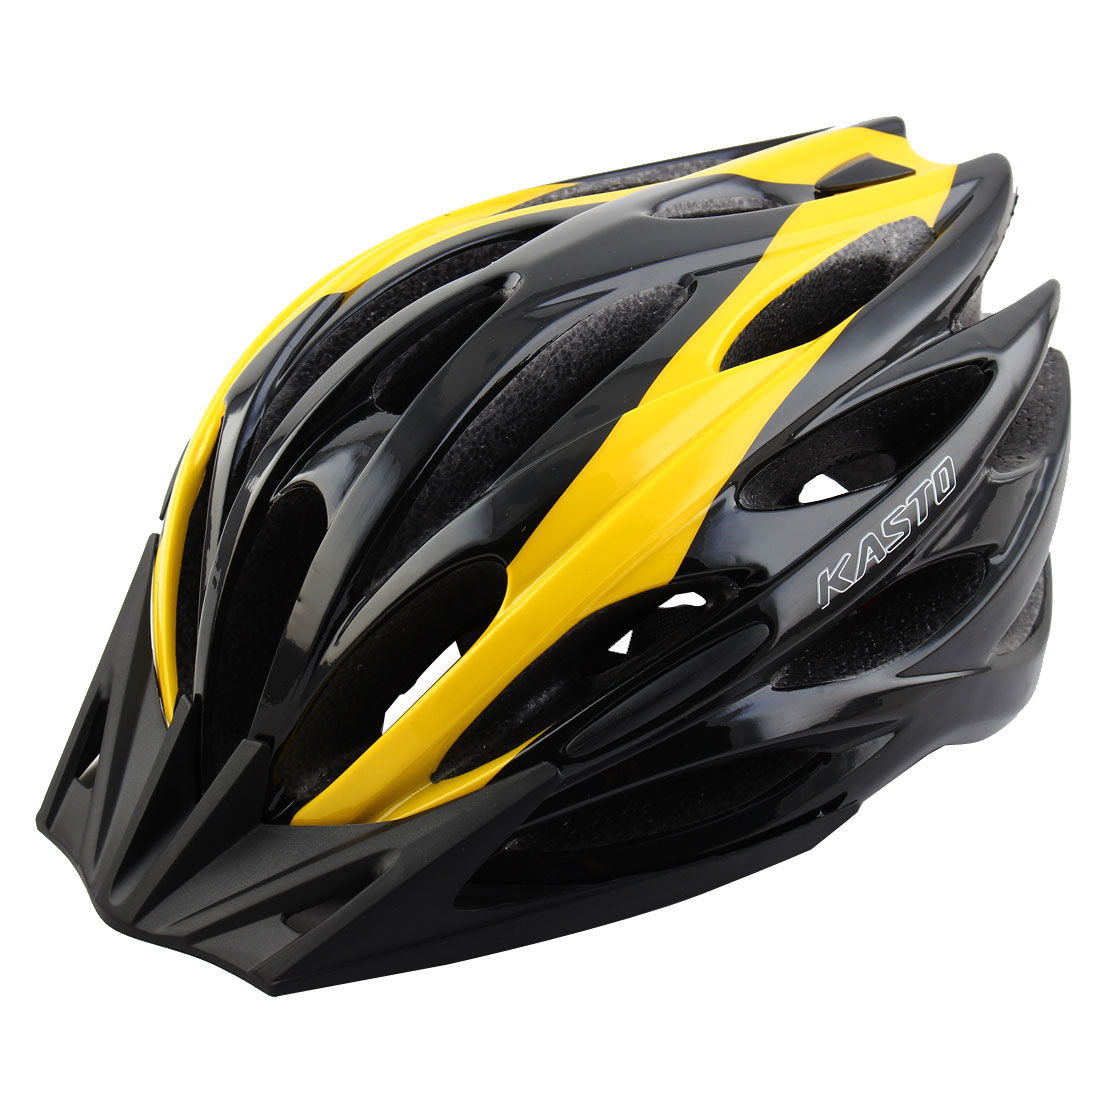 Adult Unisex 25 Holes Rotary Regulator Cycling Cap Head Safety Protector Hat Portable Biking Helmet Yellow